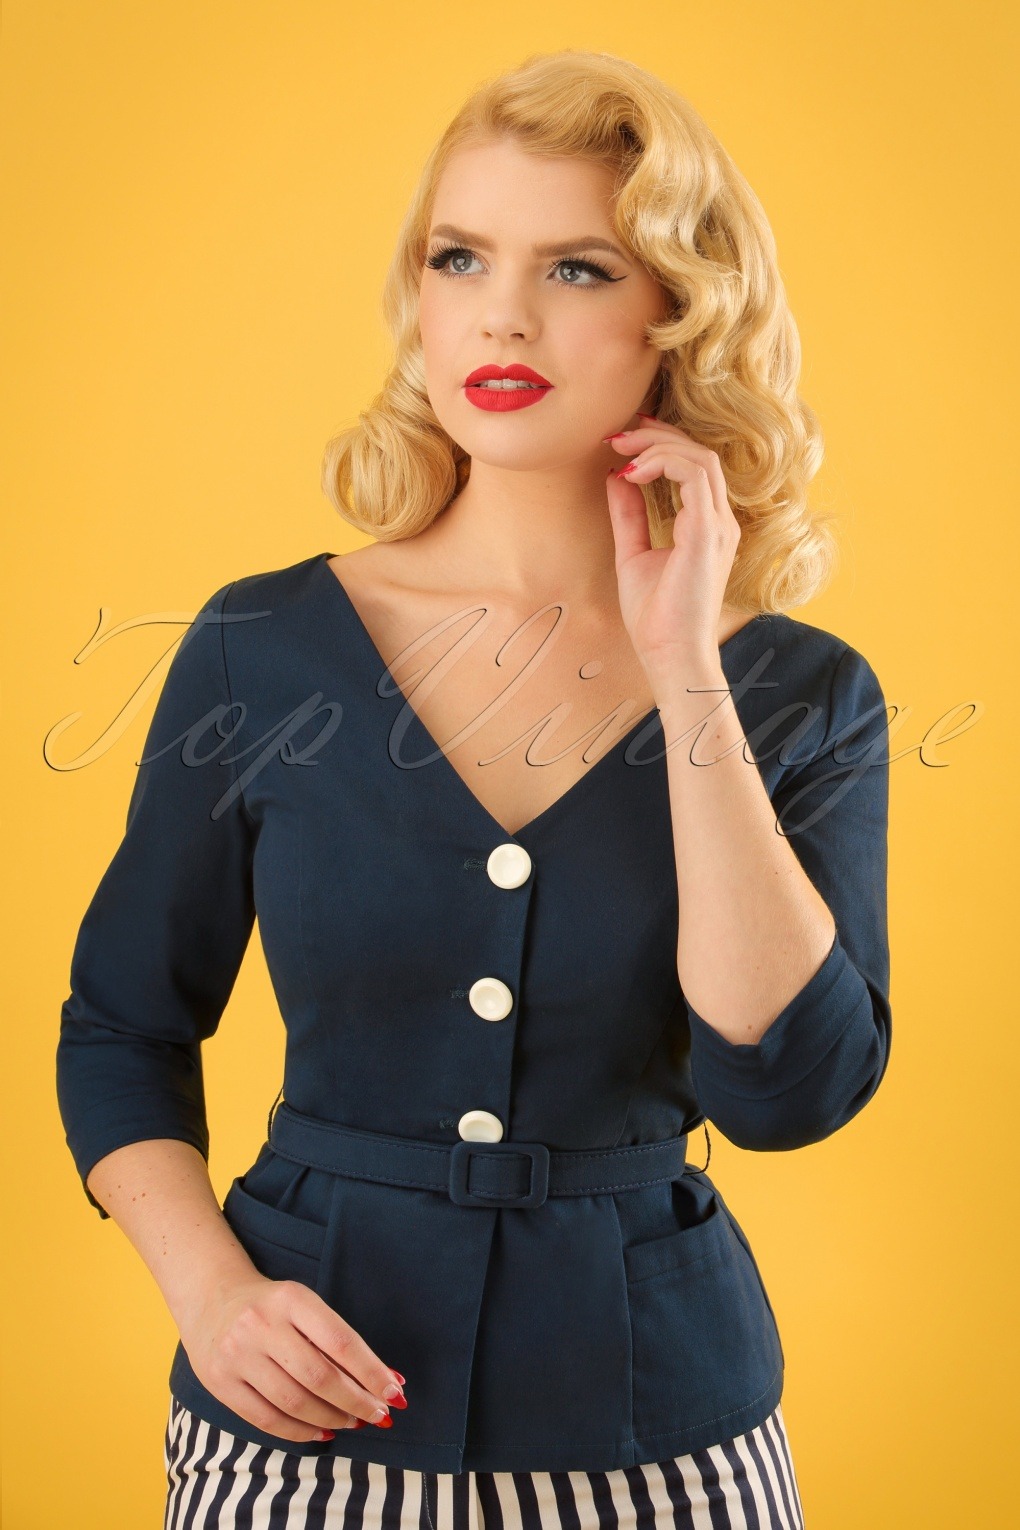 Vintage Coats & Jackets | Retro Coats and Jackets 50s Charlotte Suit Jacket in Navy £51.80 AT vintagedancer.com